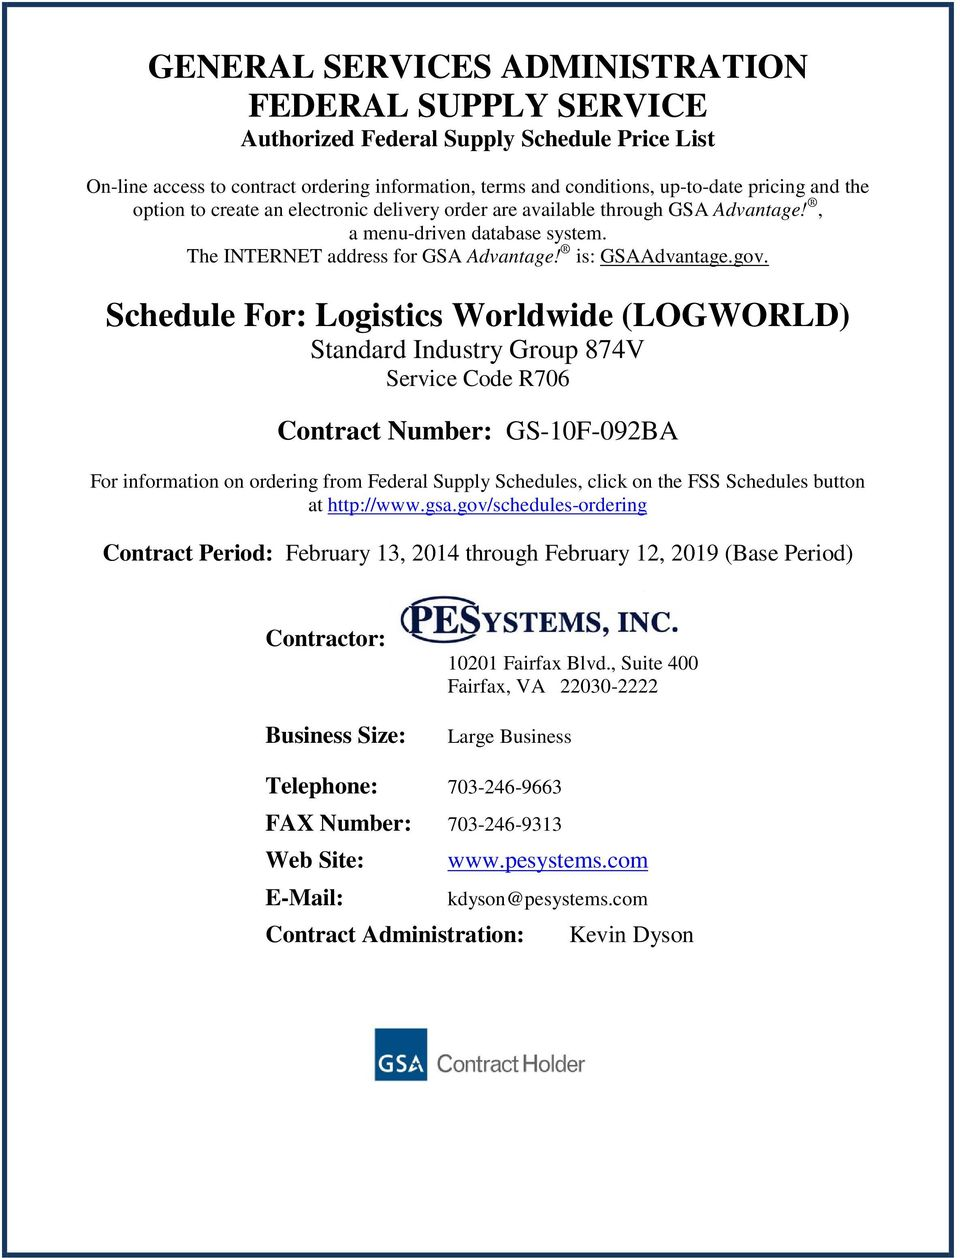 Schedule For: Logistics Worldwide (LOGWORLD) Standard Industry Group 874V Service Code R706 Contract Number: GS-10F-092BA For information on ordering from Federal Supply Schedules, click on the FSS